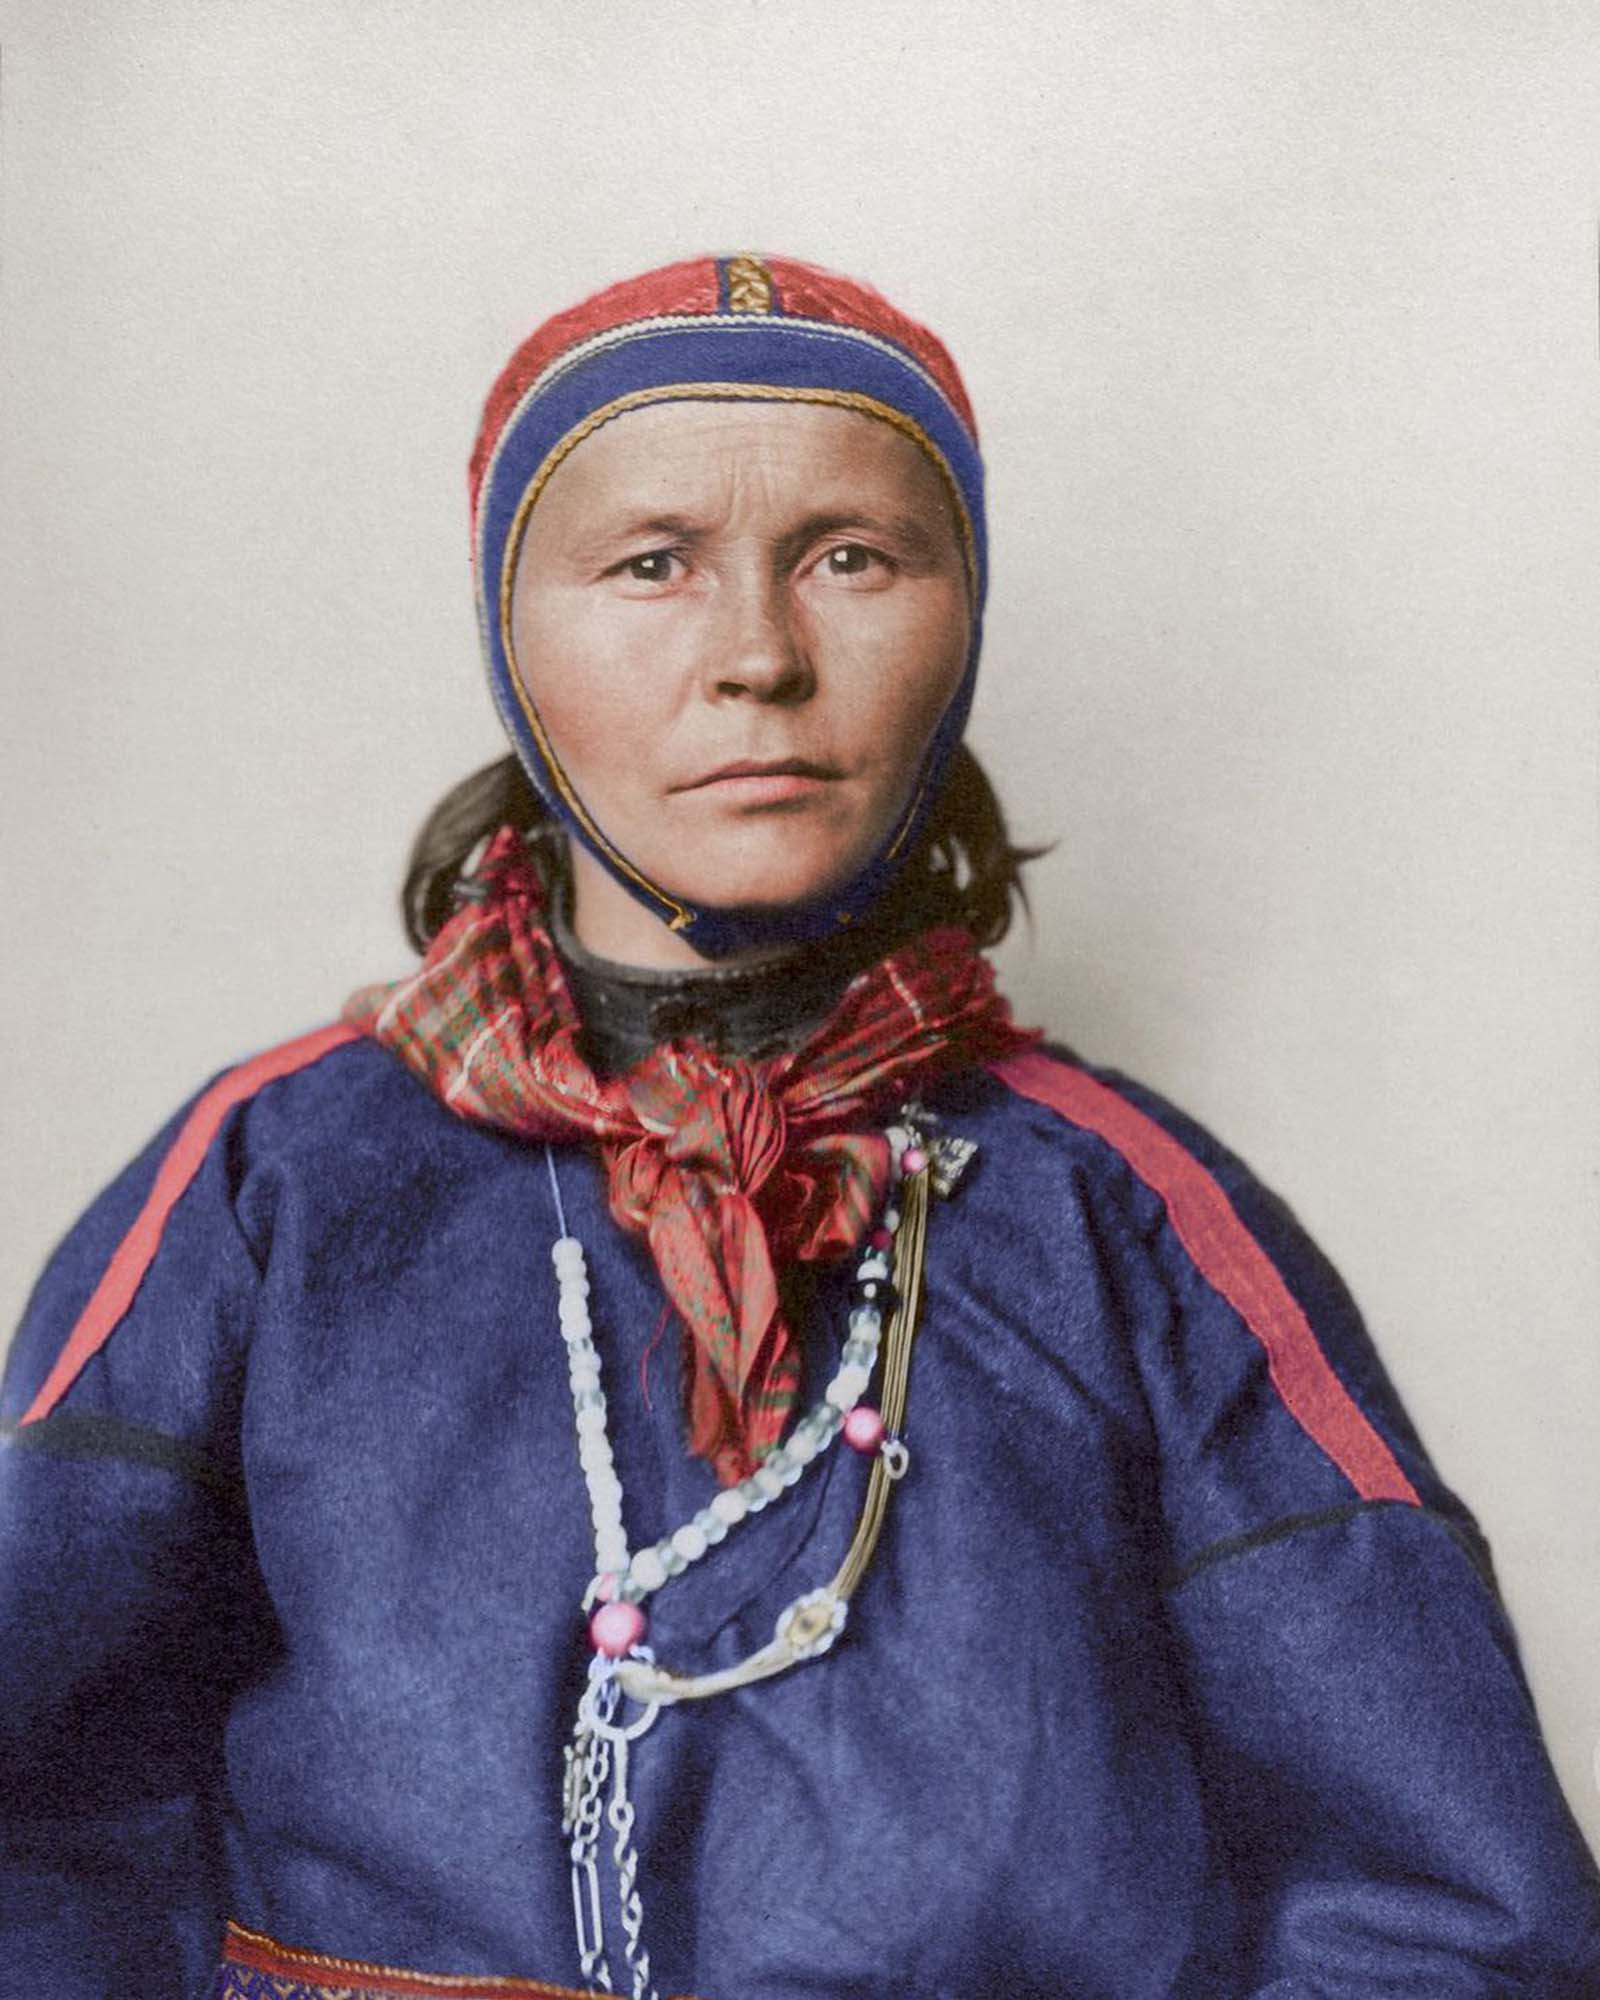 """Laplander."""" Gákti is the traditional costume of the Sámi people, who inhabit the Arctic regions spanning from northern Norway to the Kola peninsula in Russia. Traditionally made from reindeer leather and wool, velvet and silks are also used, with the (typically blue) pullover being supplemented by c"""